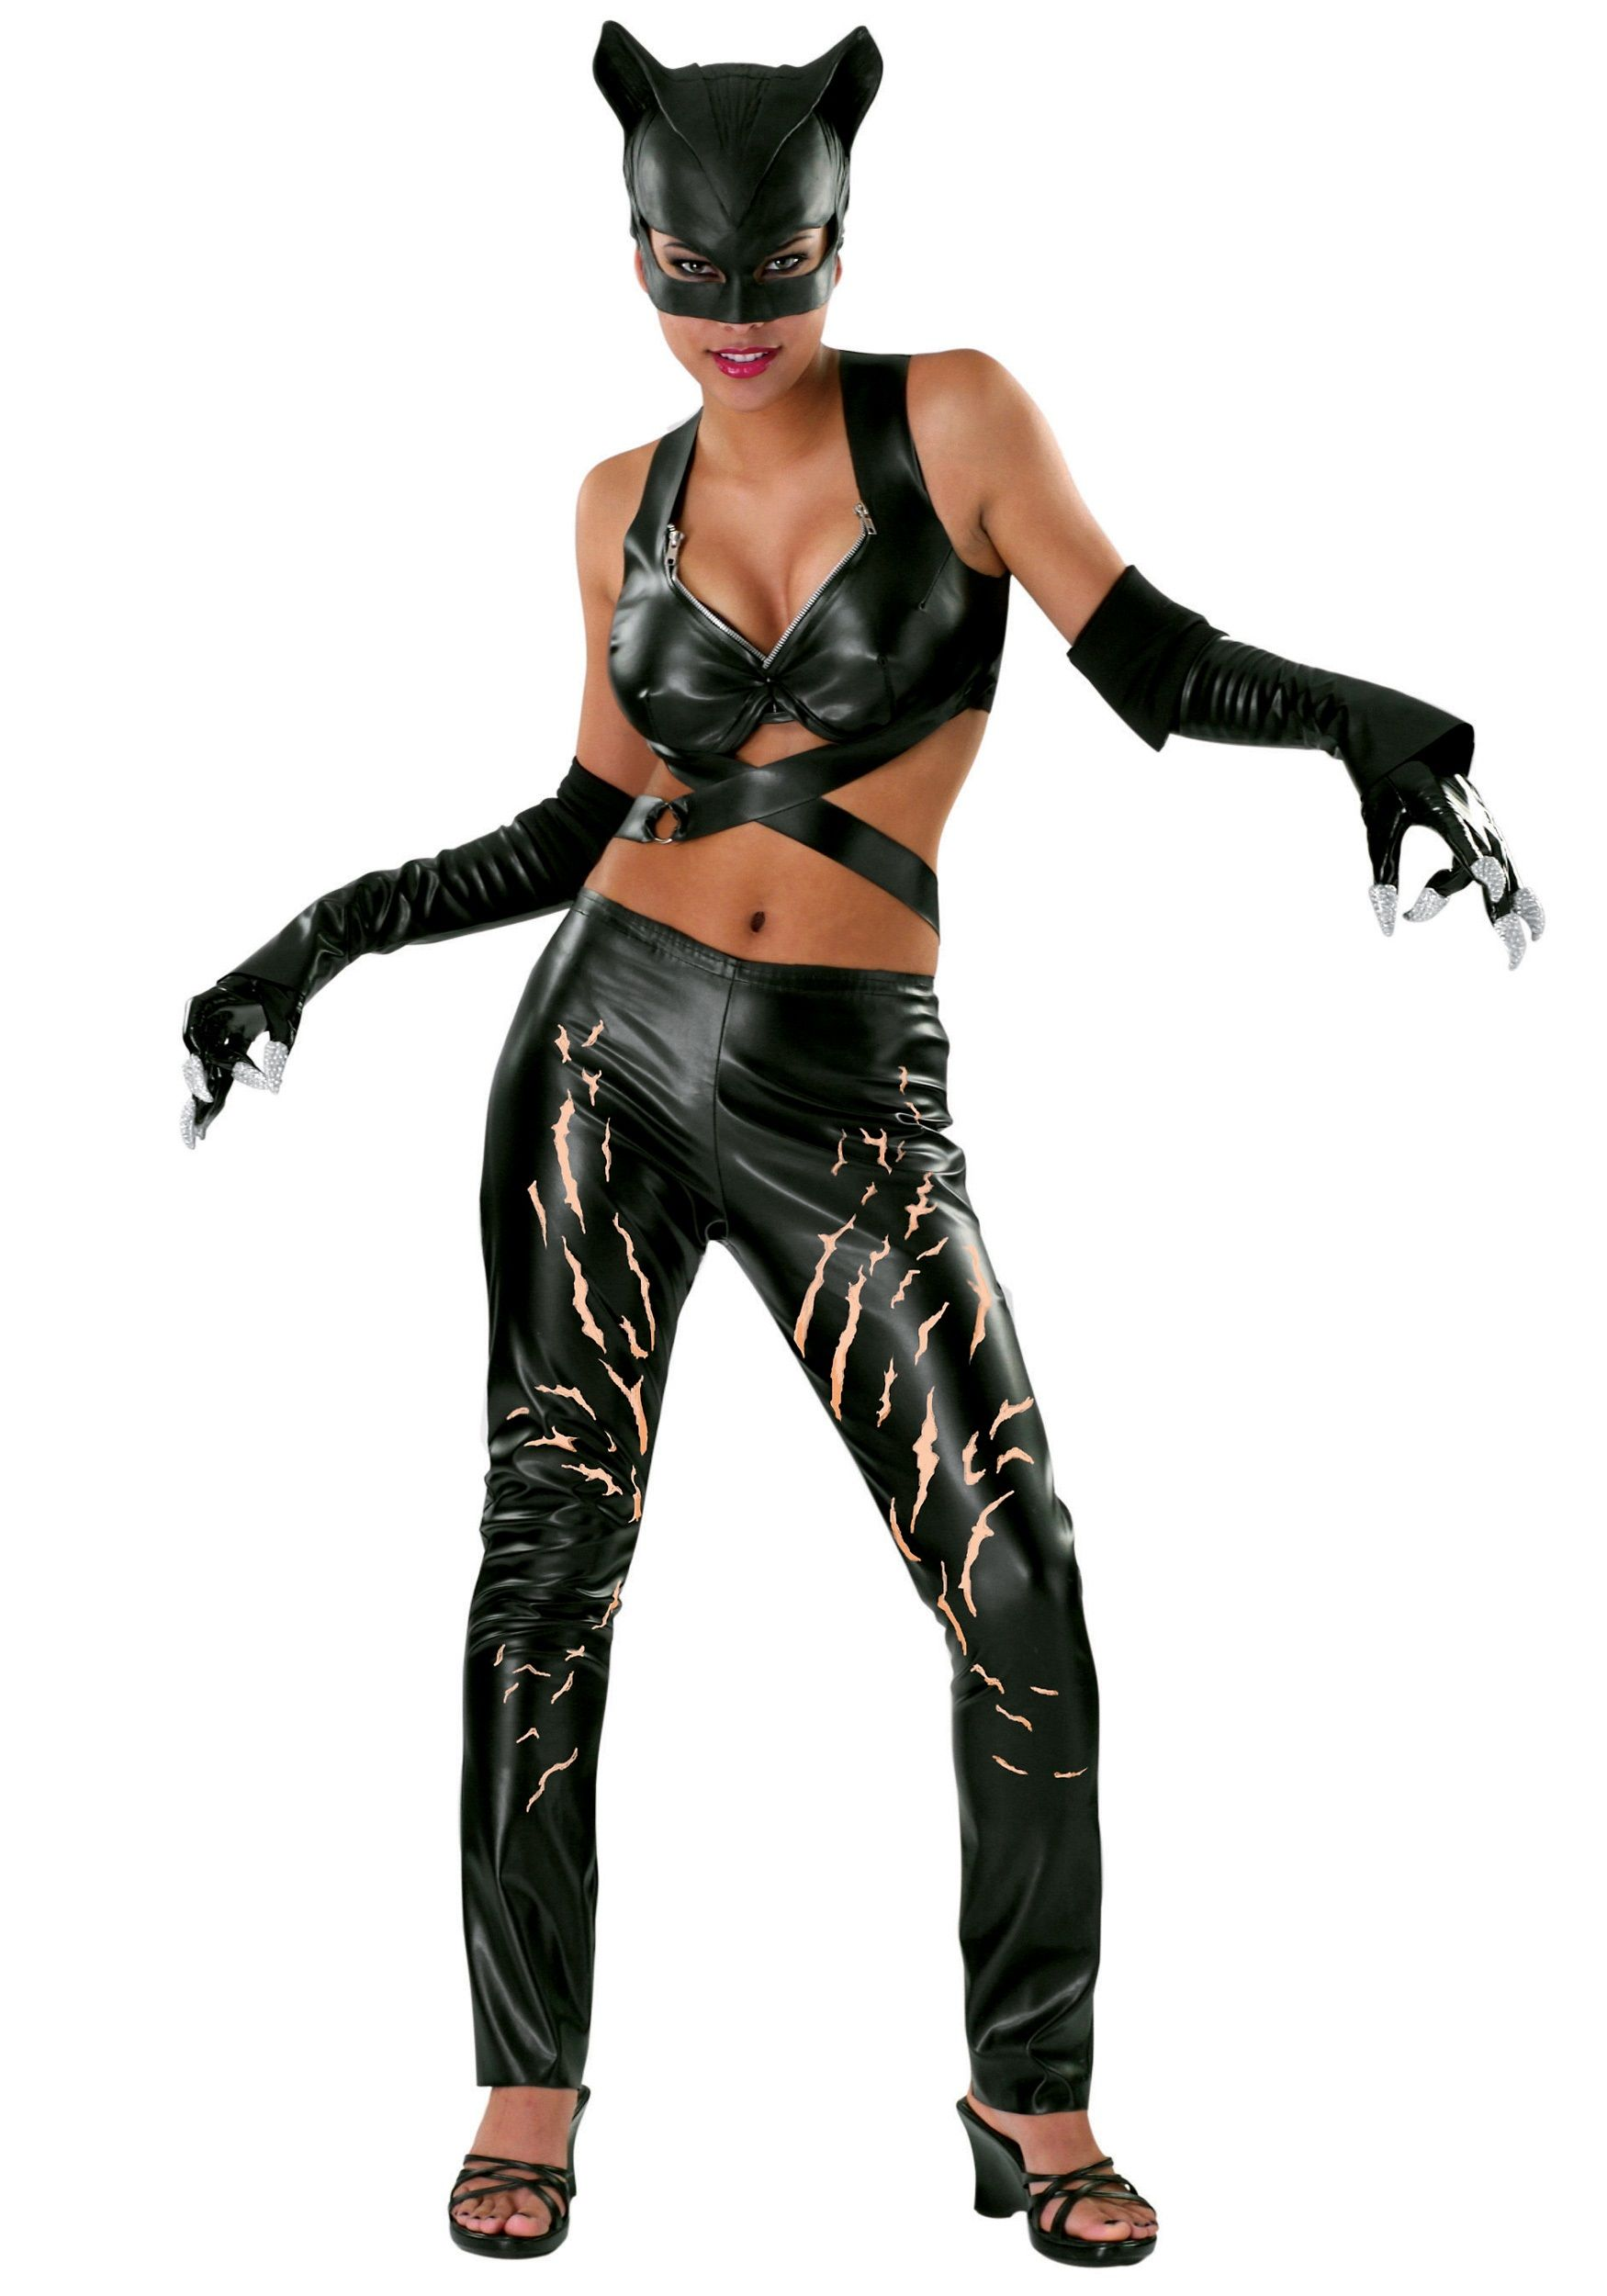 8c061ee45 Adult Catwoman Costume | Maureen | Disfraces para adultos, Catwoman ...